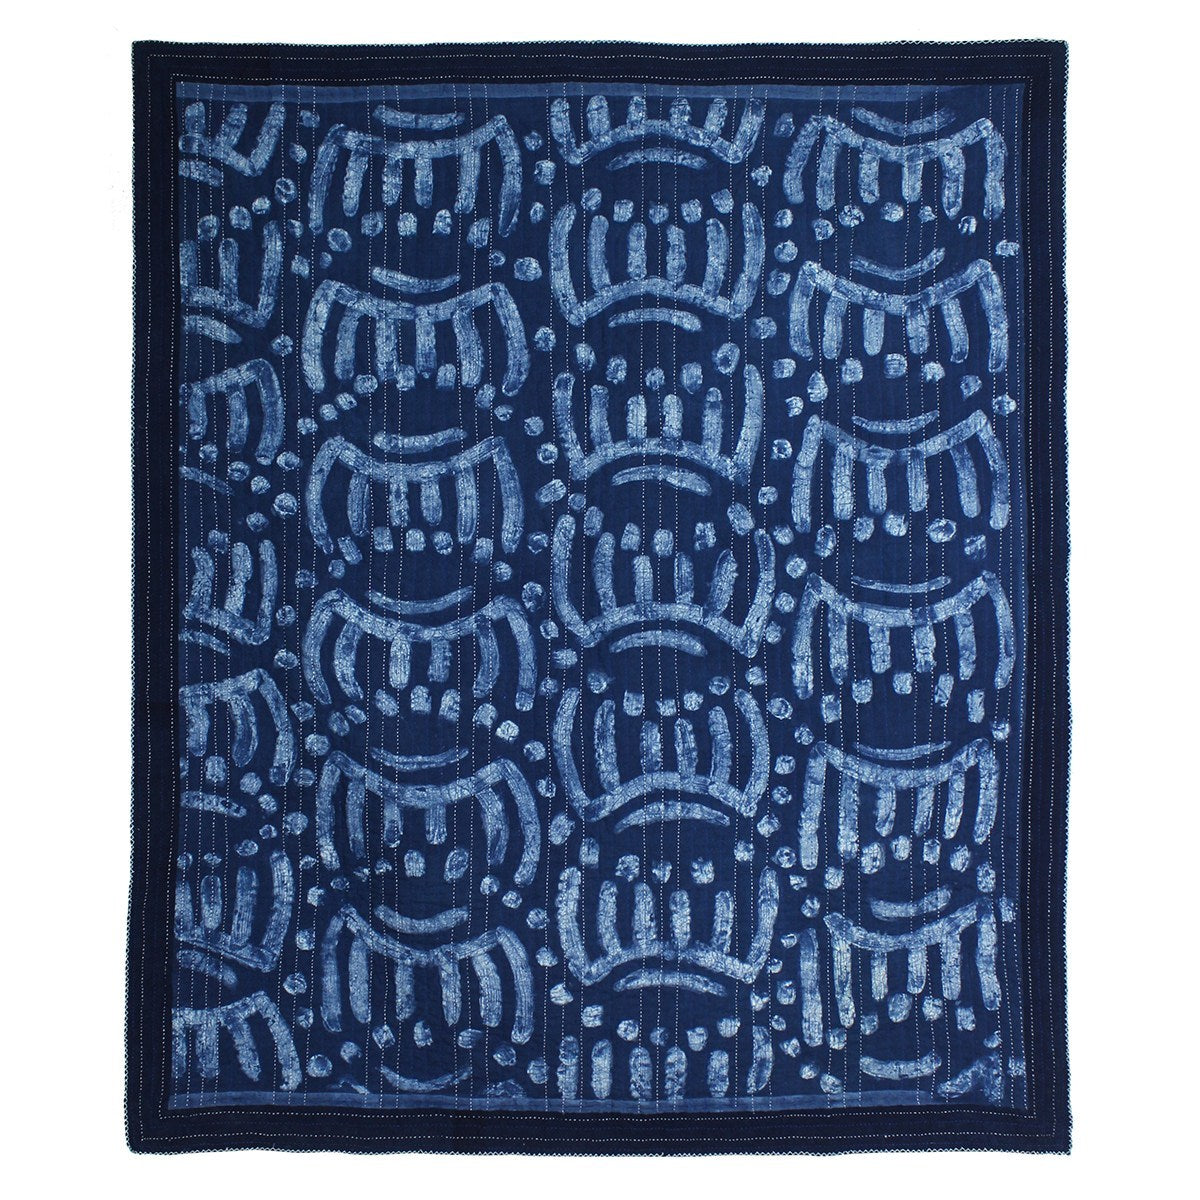 Indigo dyed woven quilt